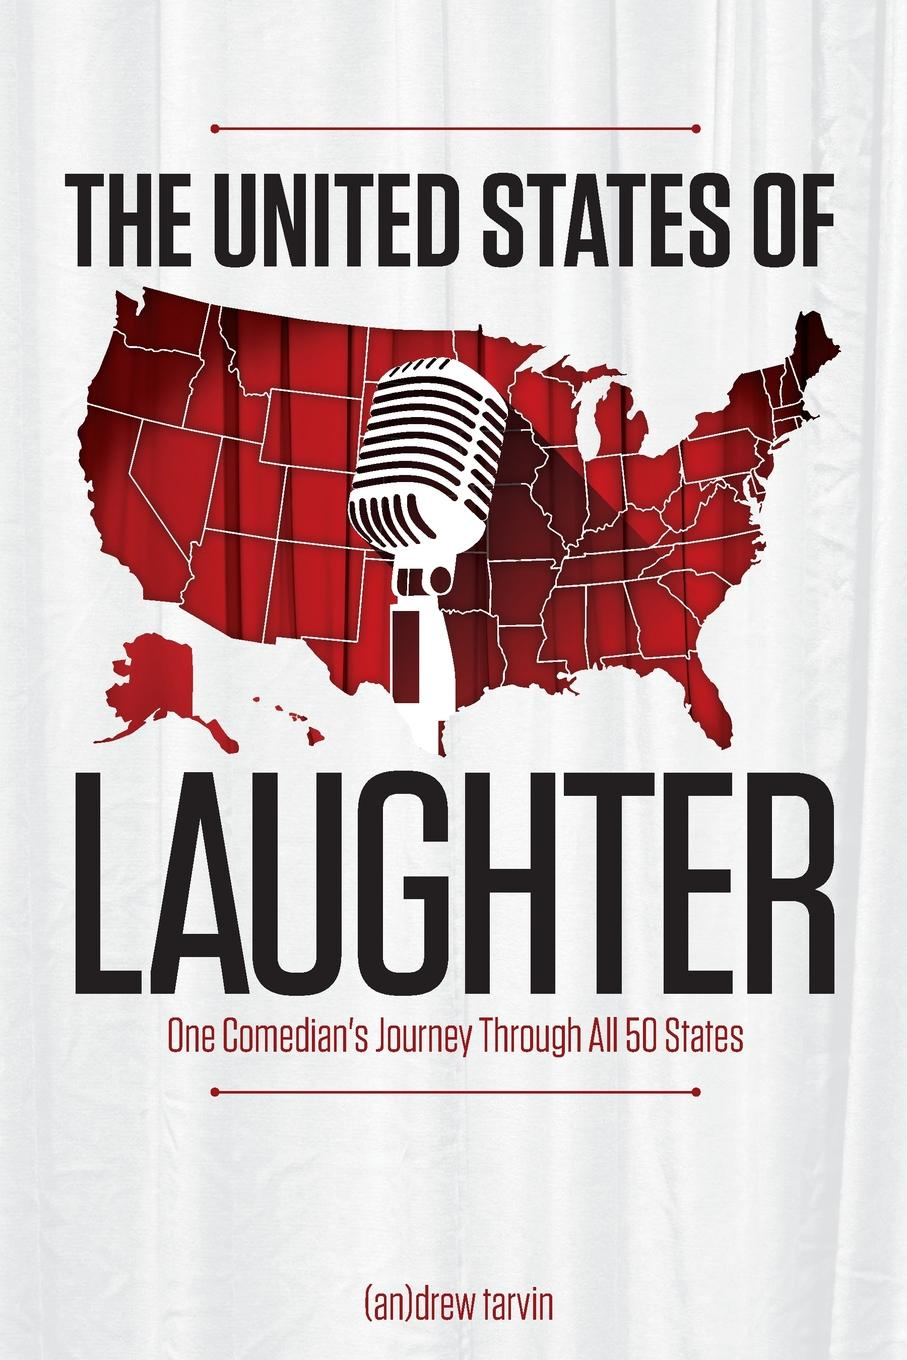 Andrew Tarvin The United States of Laughter. One C Journey Through All 50